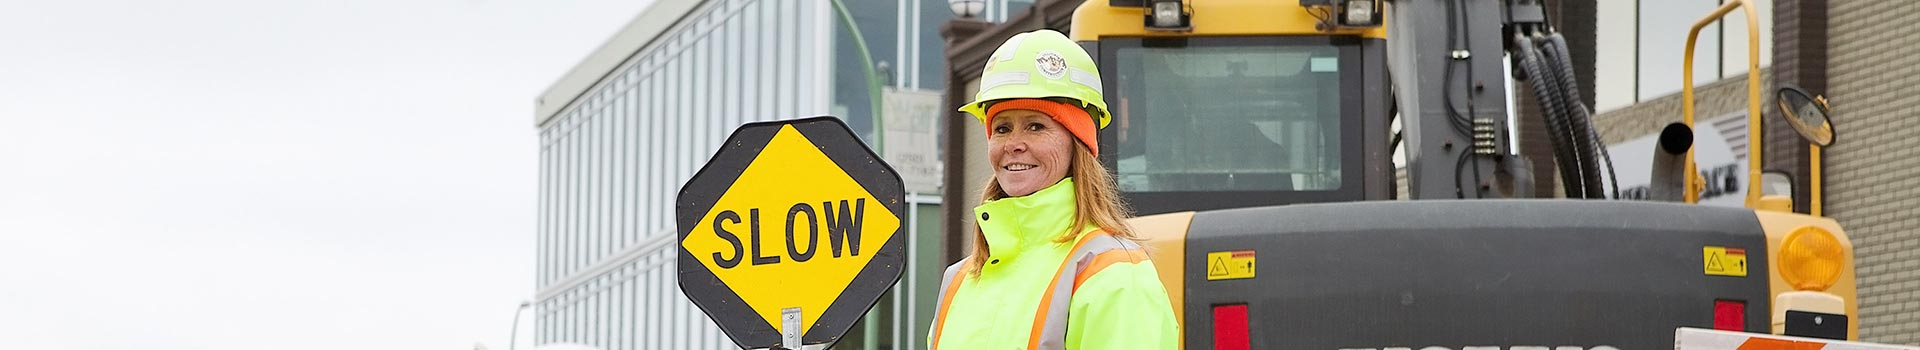 Kelowna construction flagger smiling